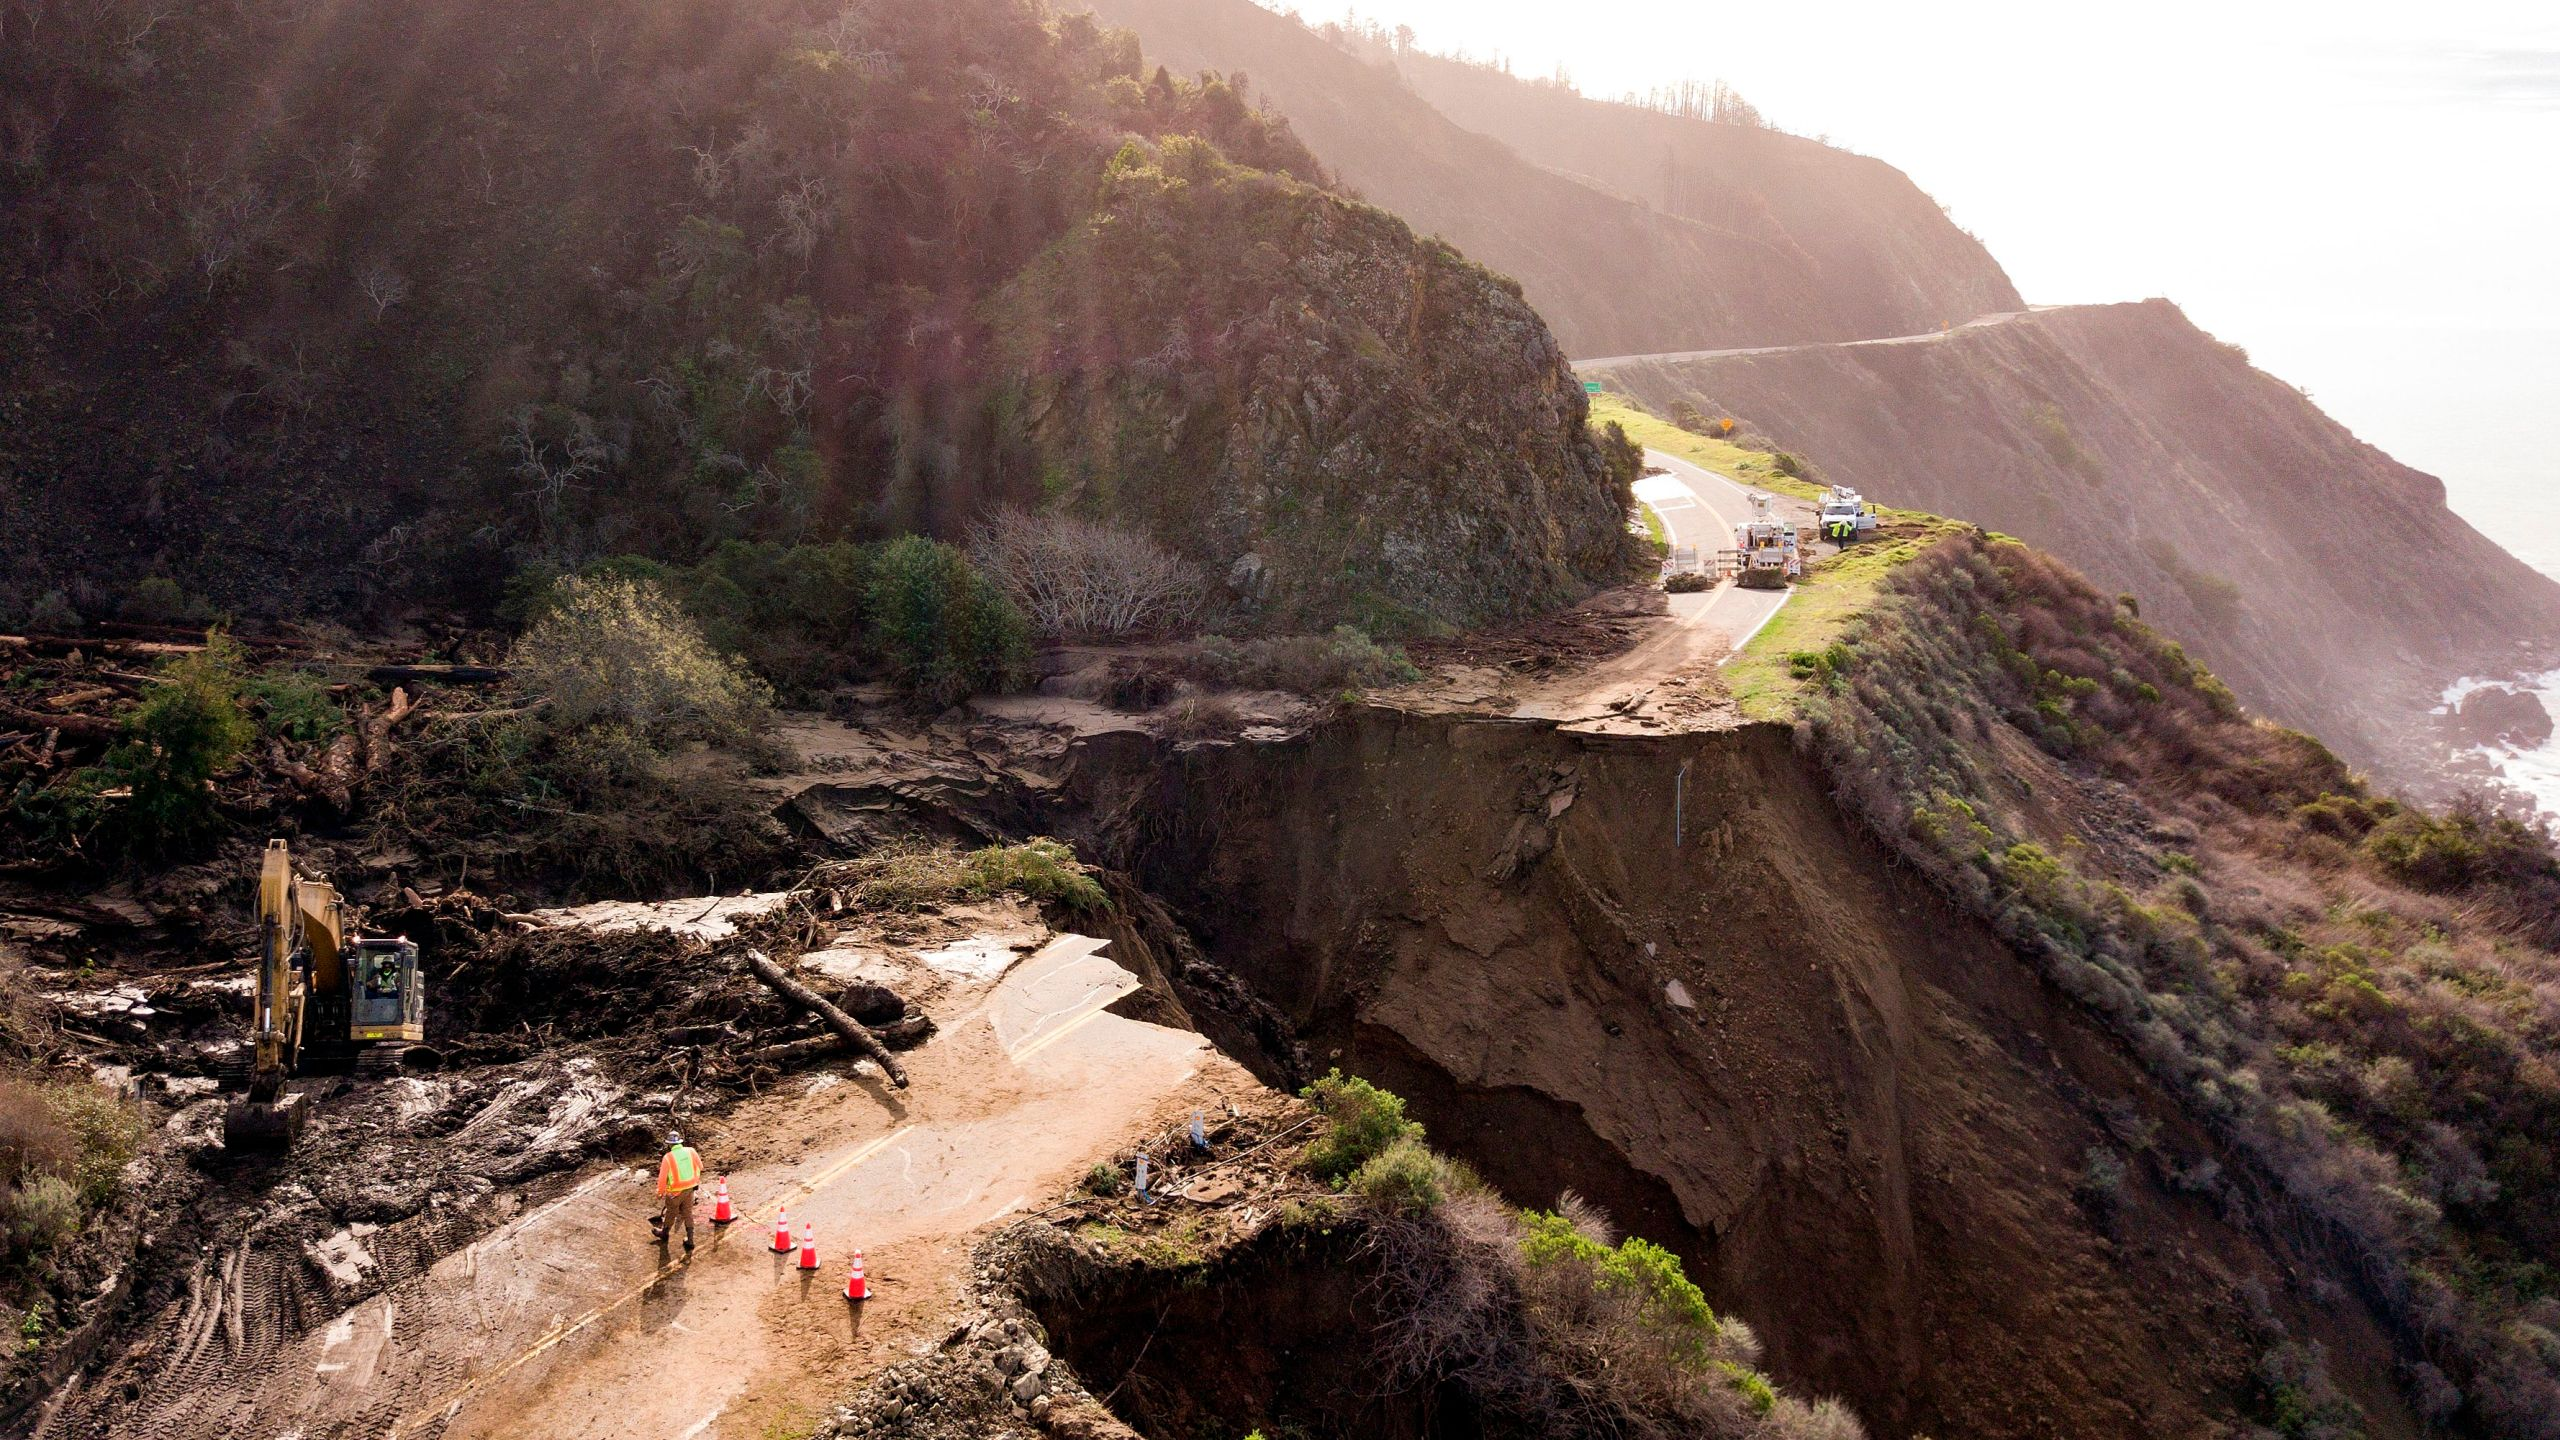 Construction crews work on a section of Highway 1 which collapsed into the Pacific Ocean near Big Sur, California on January 31, 2021.(Josh Edelson/AFP via Getty Images)